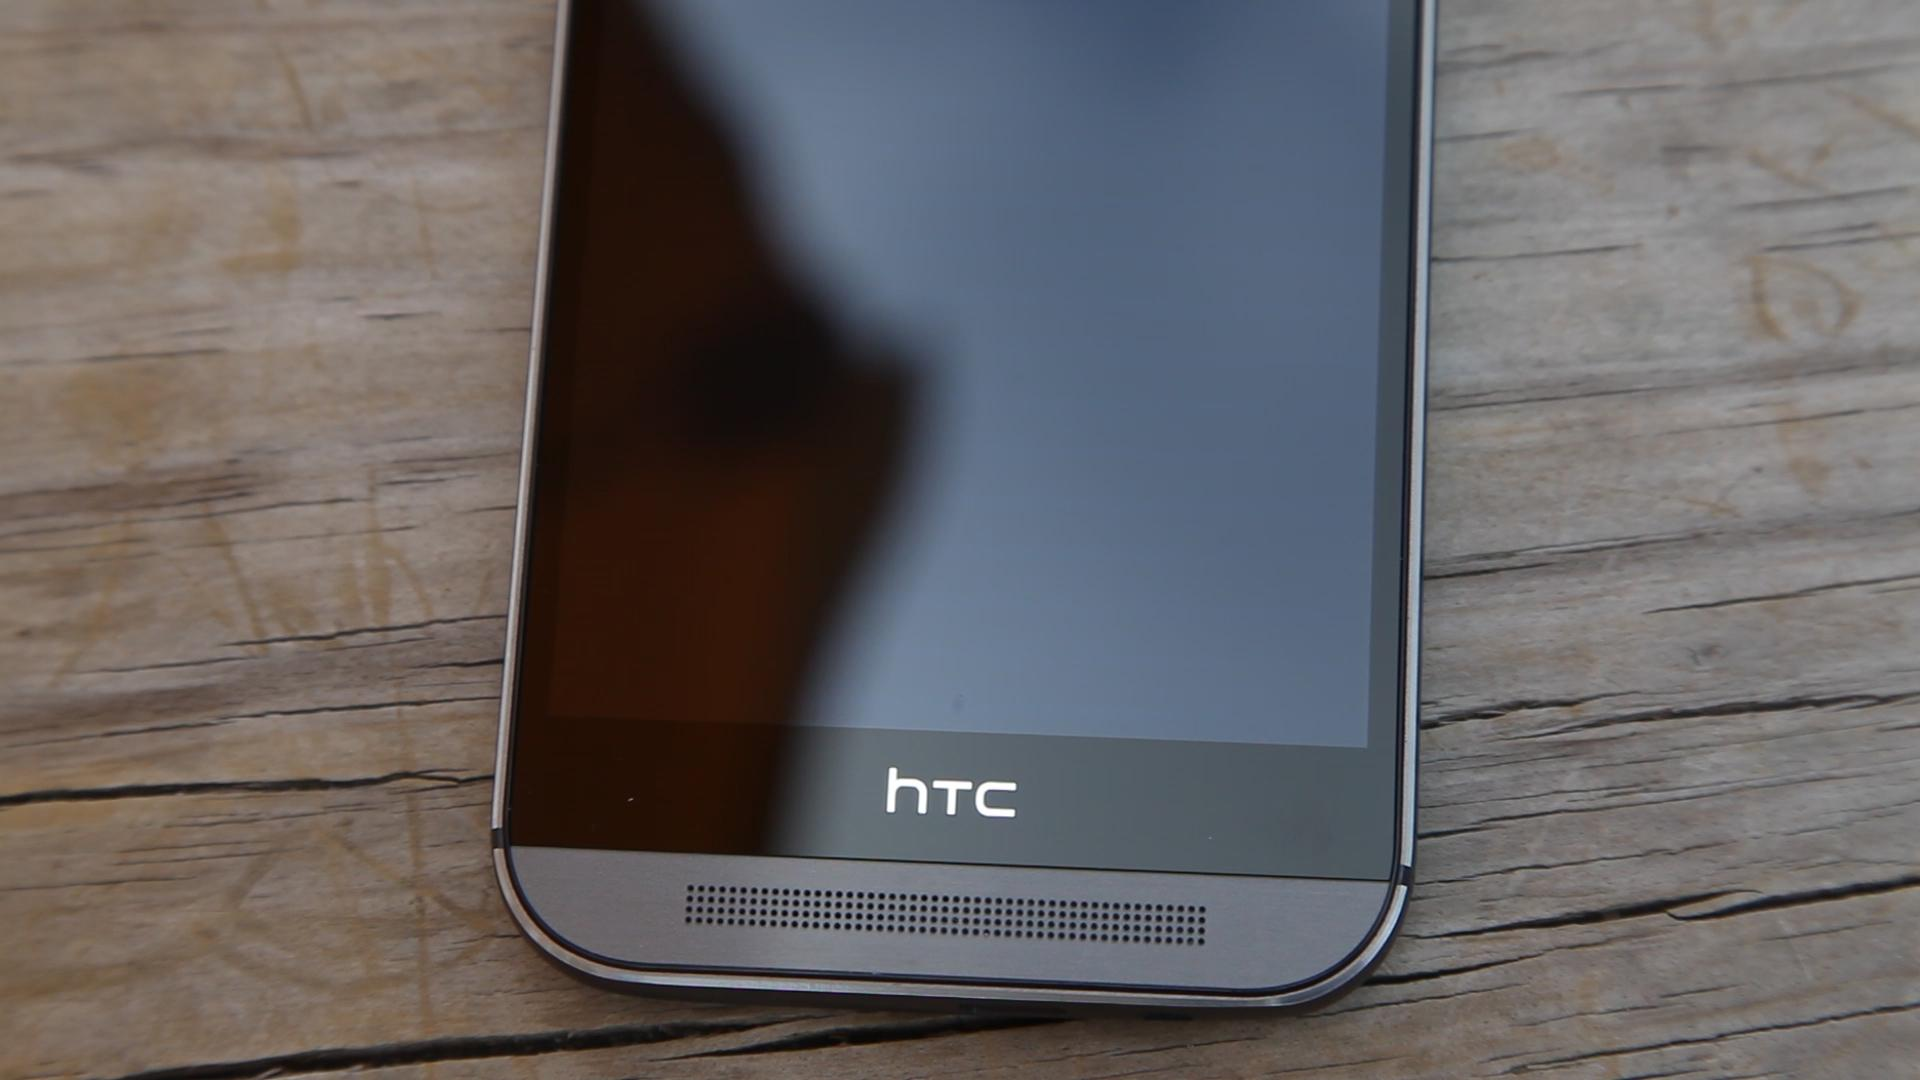 htc one m8 cracked screen